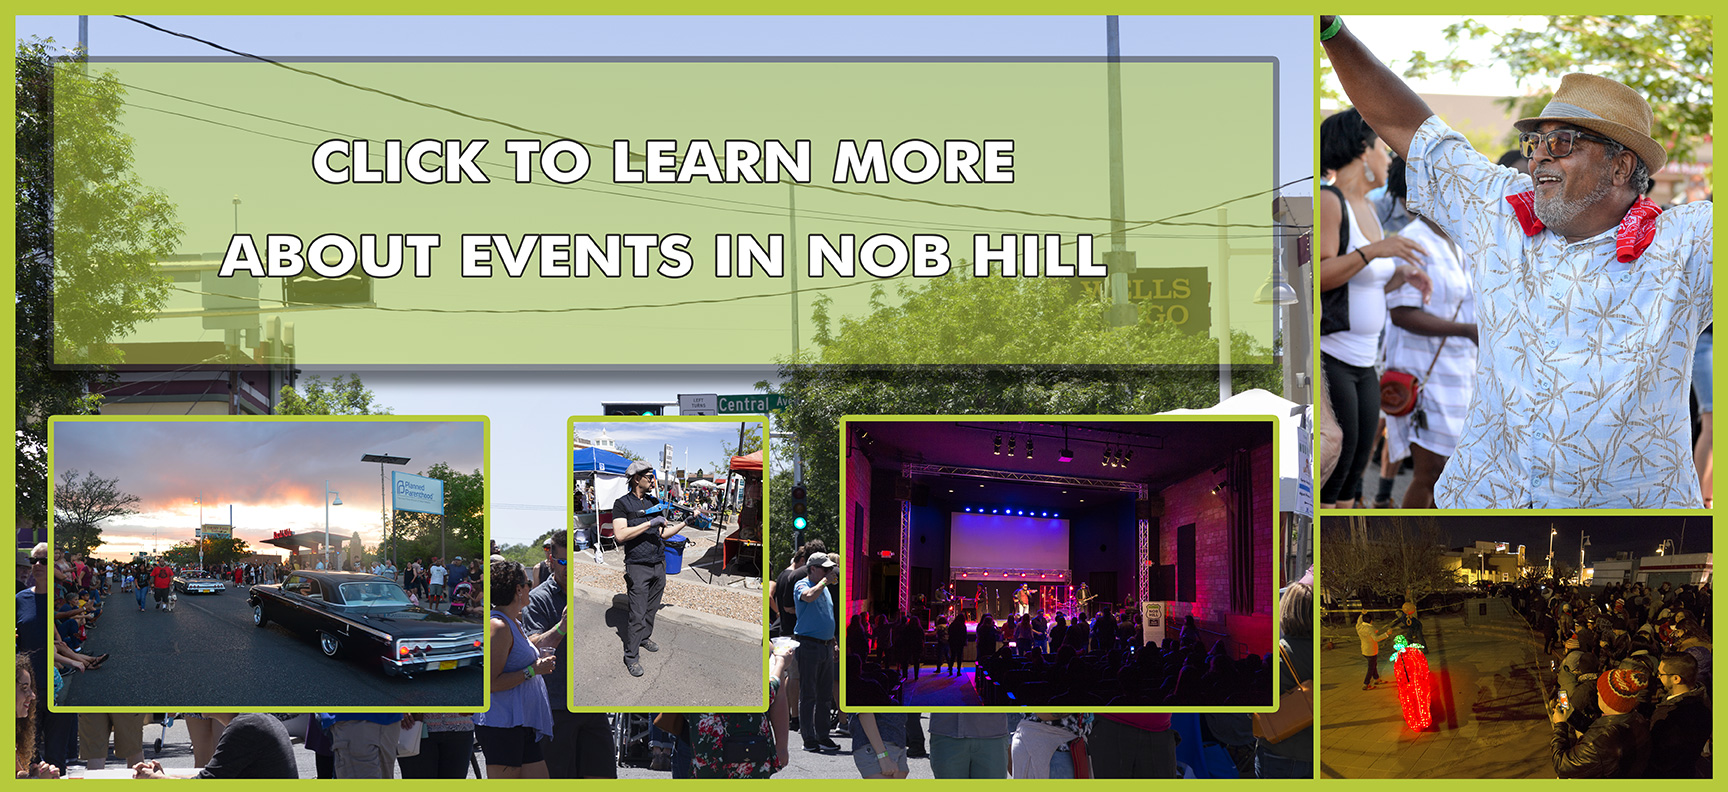 Explore Nob Hill